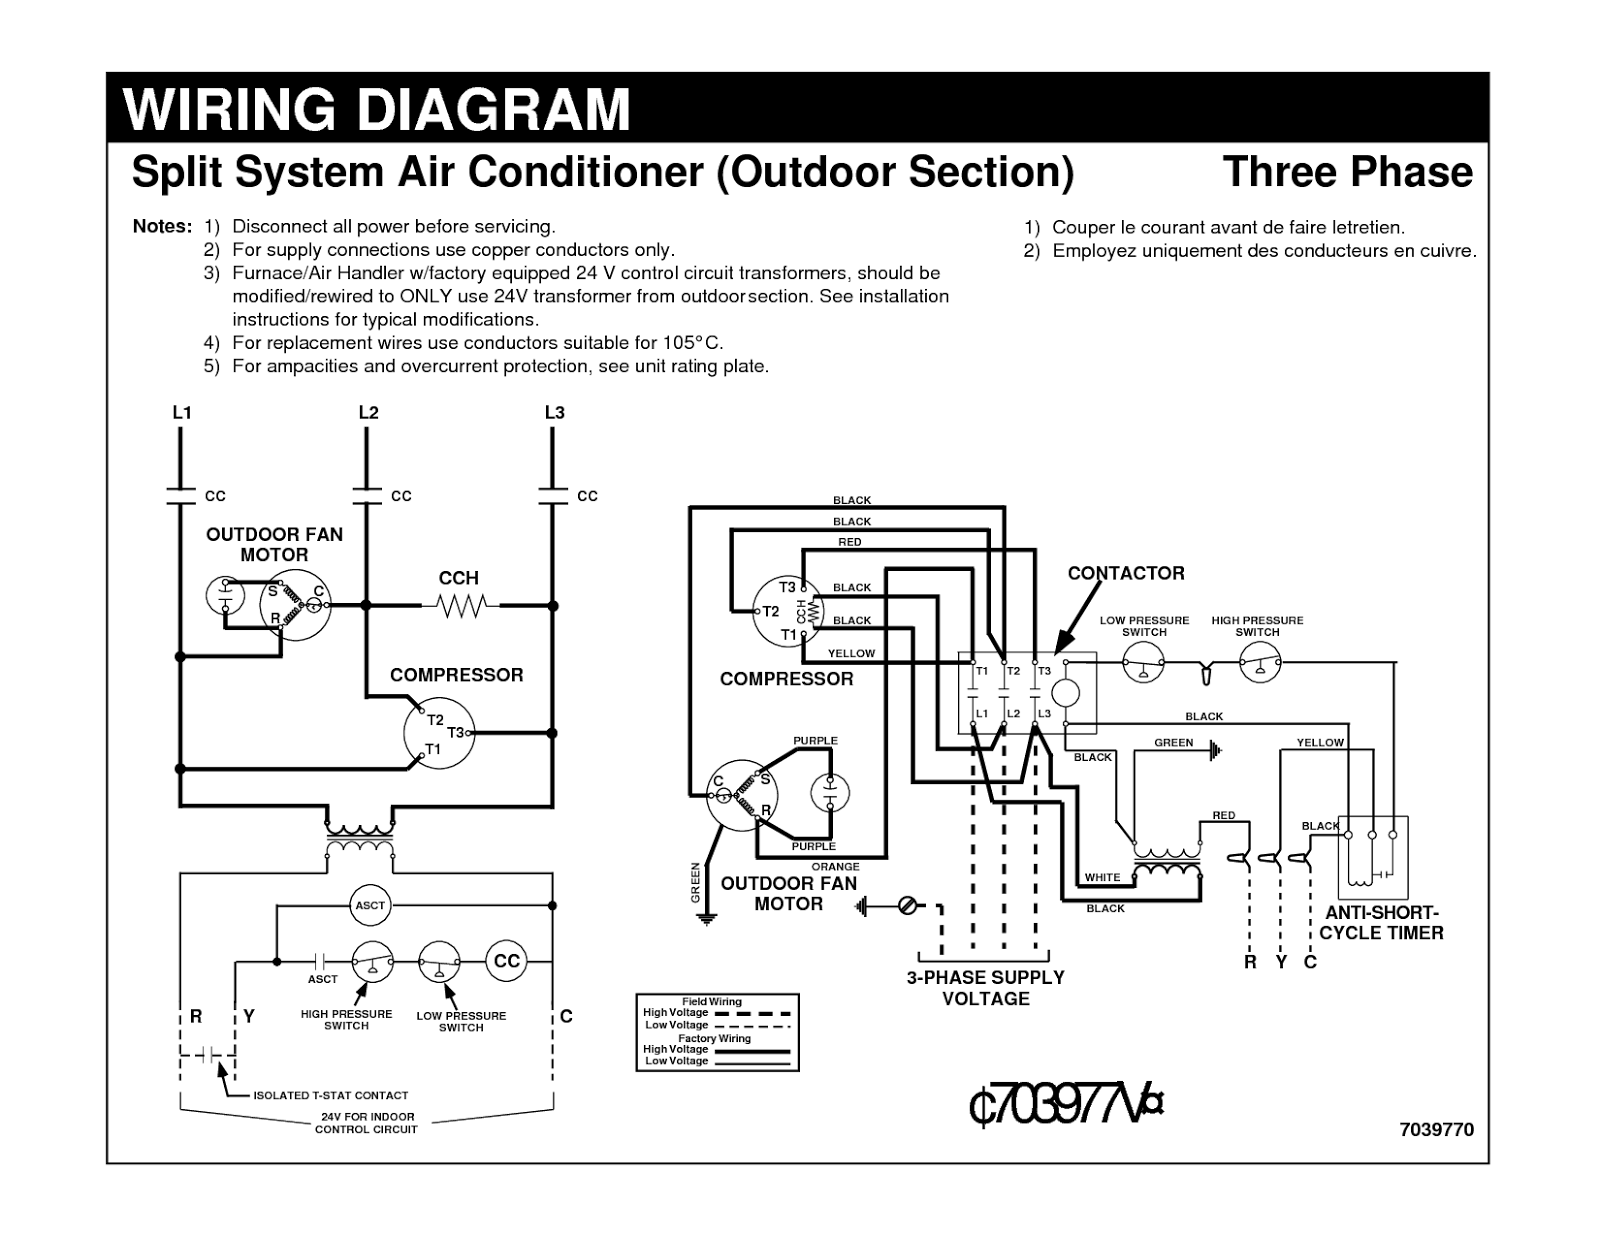 electrical wiring diagram for light switch electrical wiring diagram for split ac electrical wiring diagrams for air conditioning systems ... #14